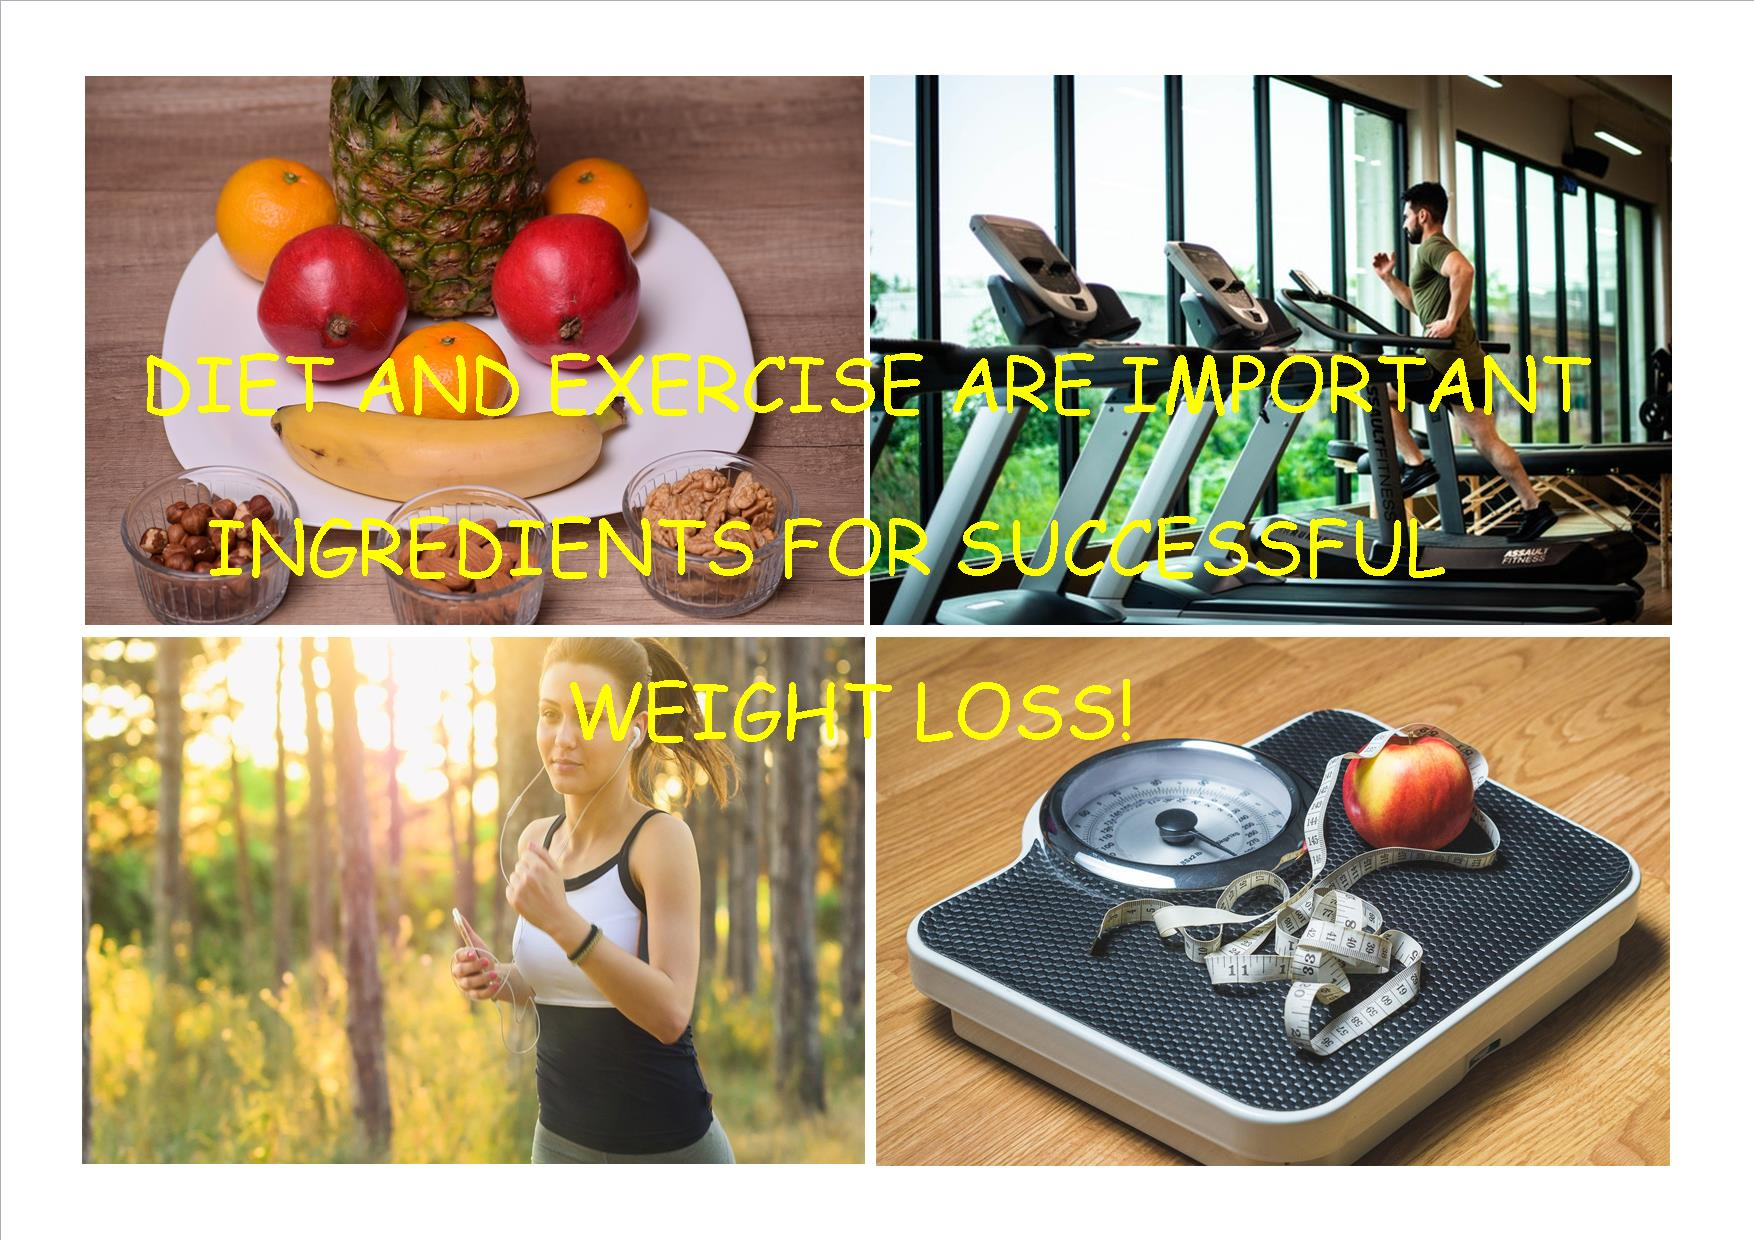 DIET AND EXERCISE ARE IMPORTANT INGREDIENTS FOR SUCCESSFUL WEIGHT LOSS!